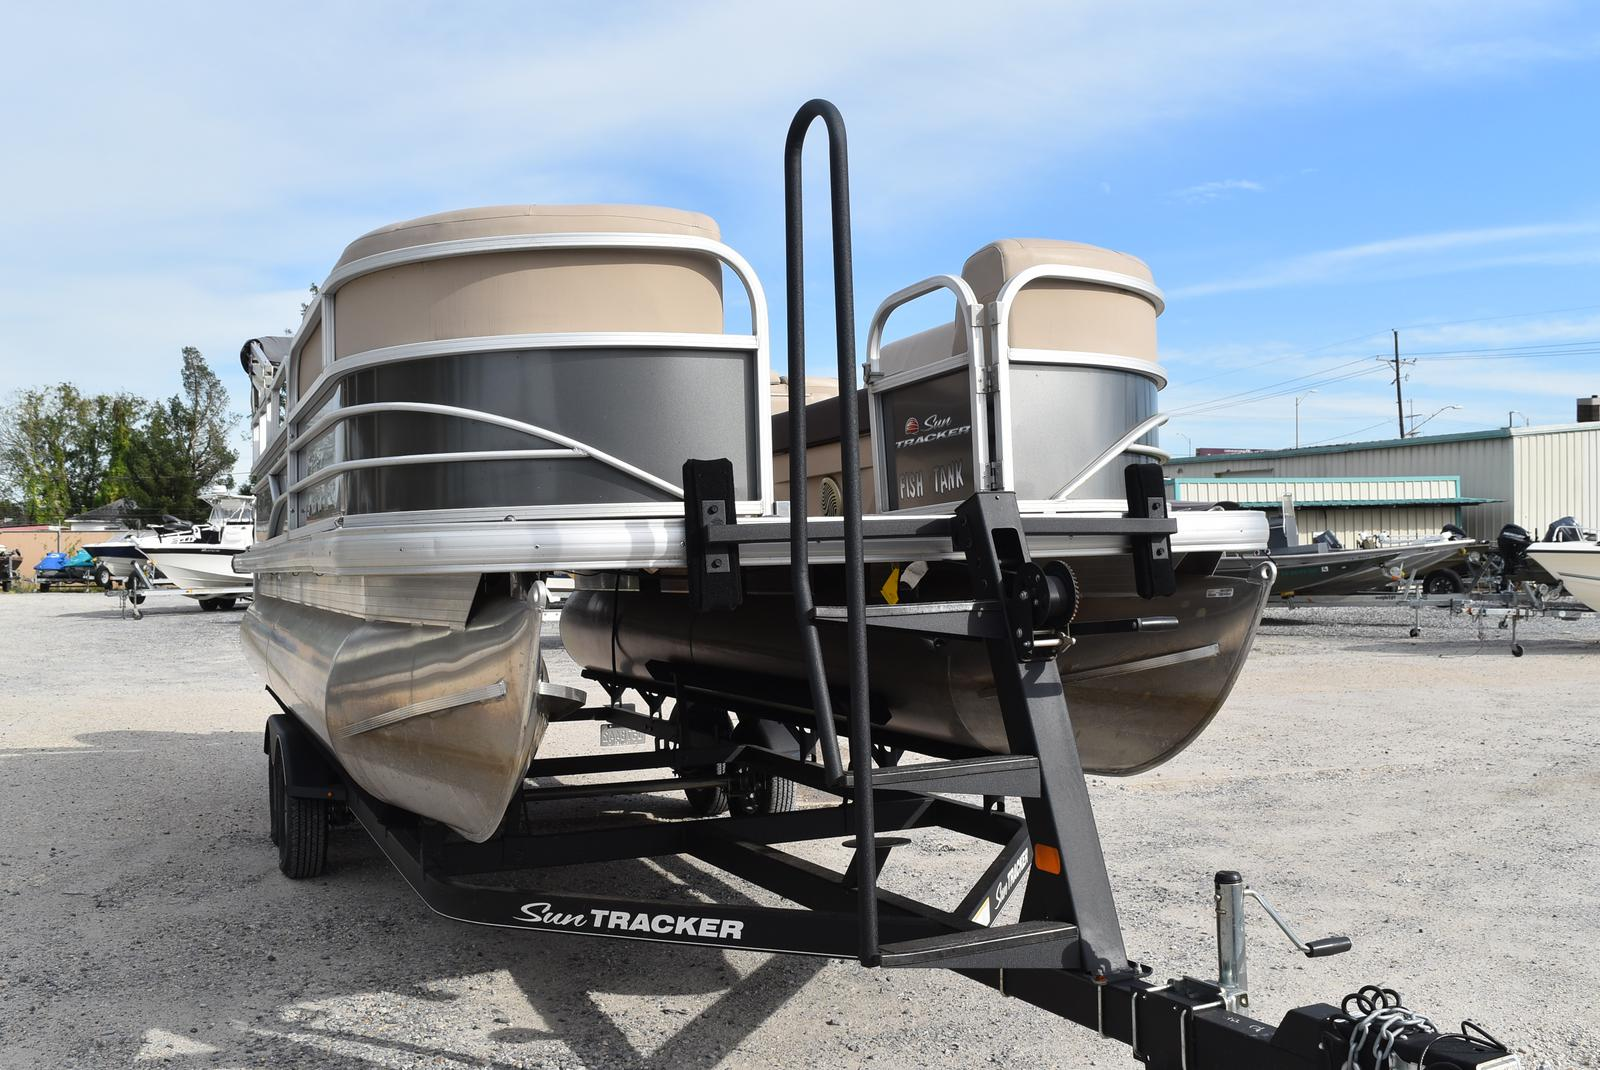 2018 Sun Tracker boat for sale, model of the boat is Party Barge 20 DLX, 90CT & Image # 7 of 14